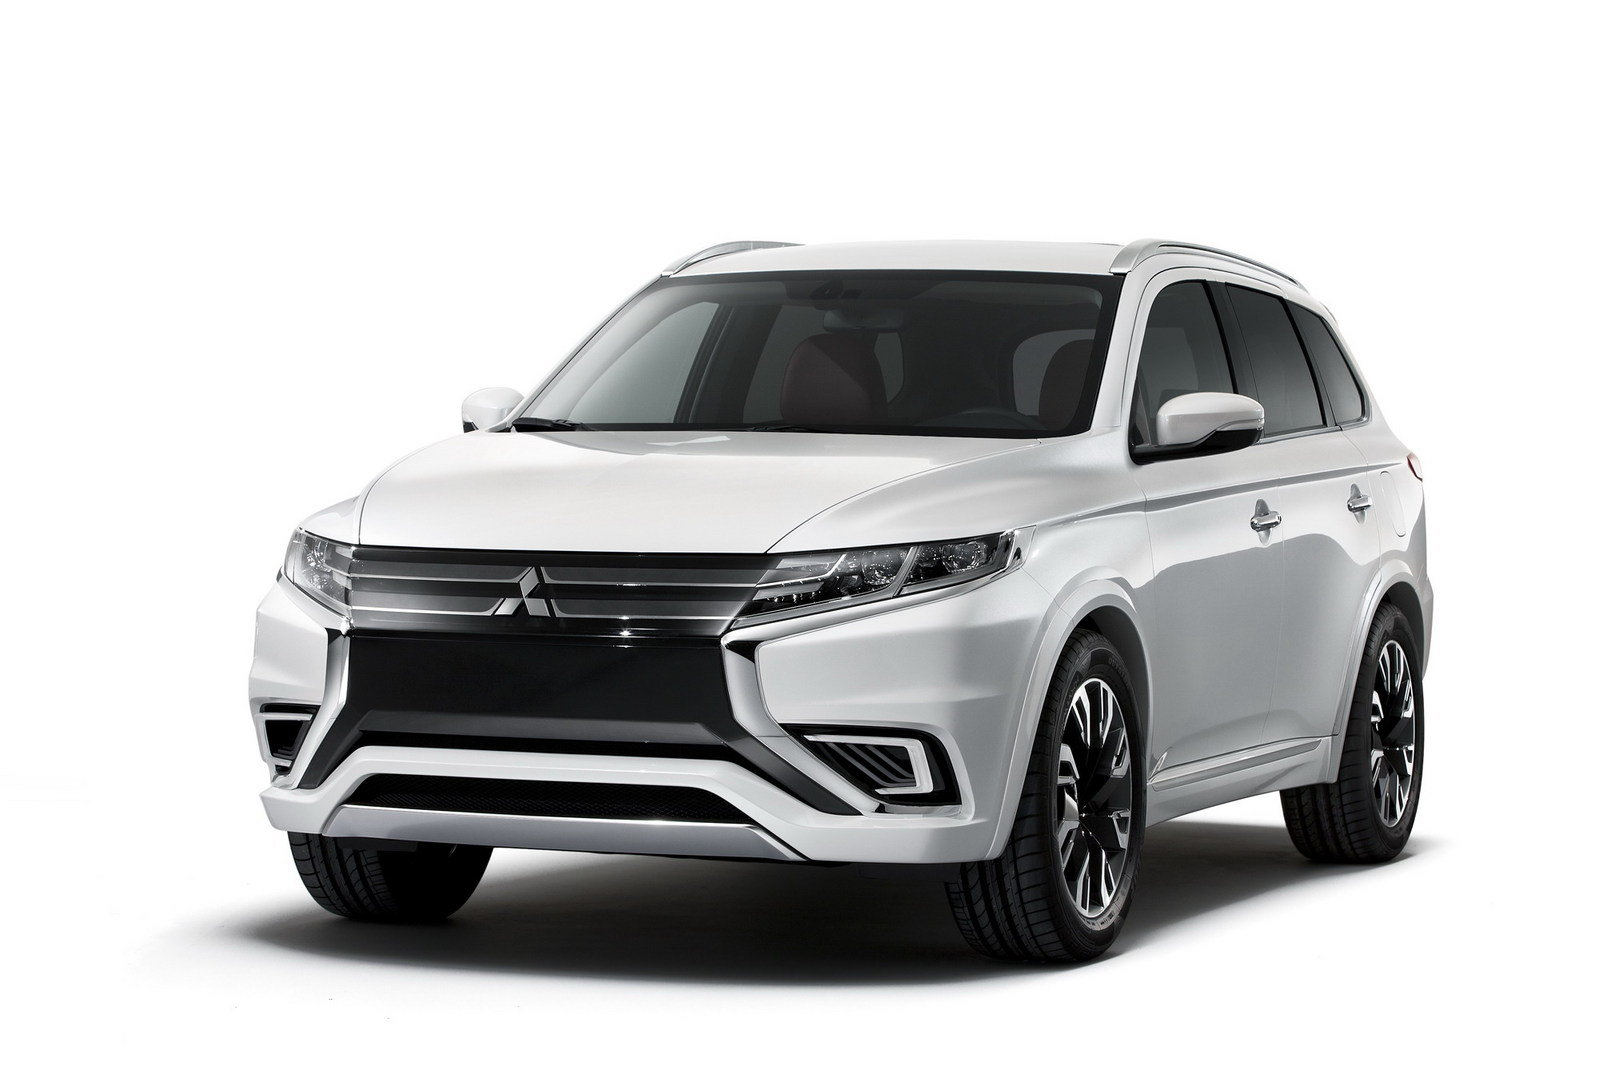 2015 Mitsubishi Outlander PHEV Concept-S - Picture 569473 | car review @ Top Speed